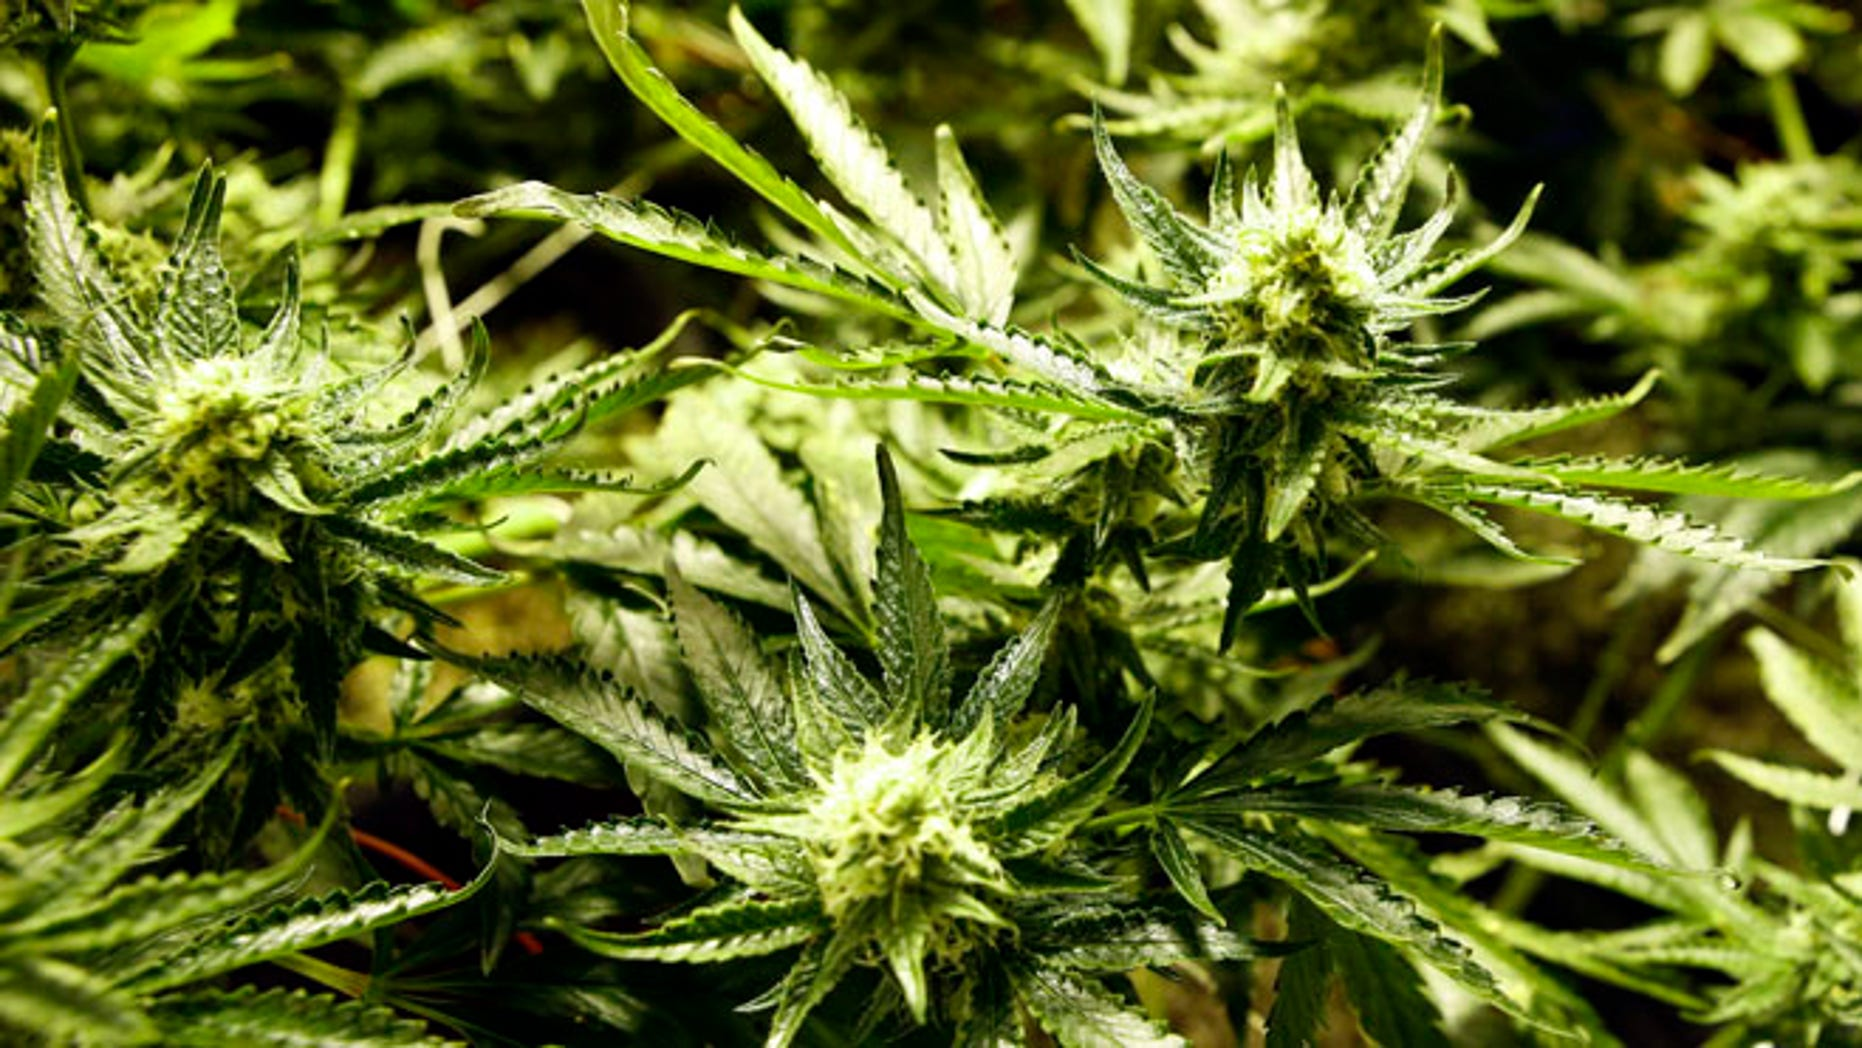 Dec. 5, 2013: Marijuana matures in ideal conditions at the Medicine Man dispensary and grow operation in northeast Denver.